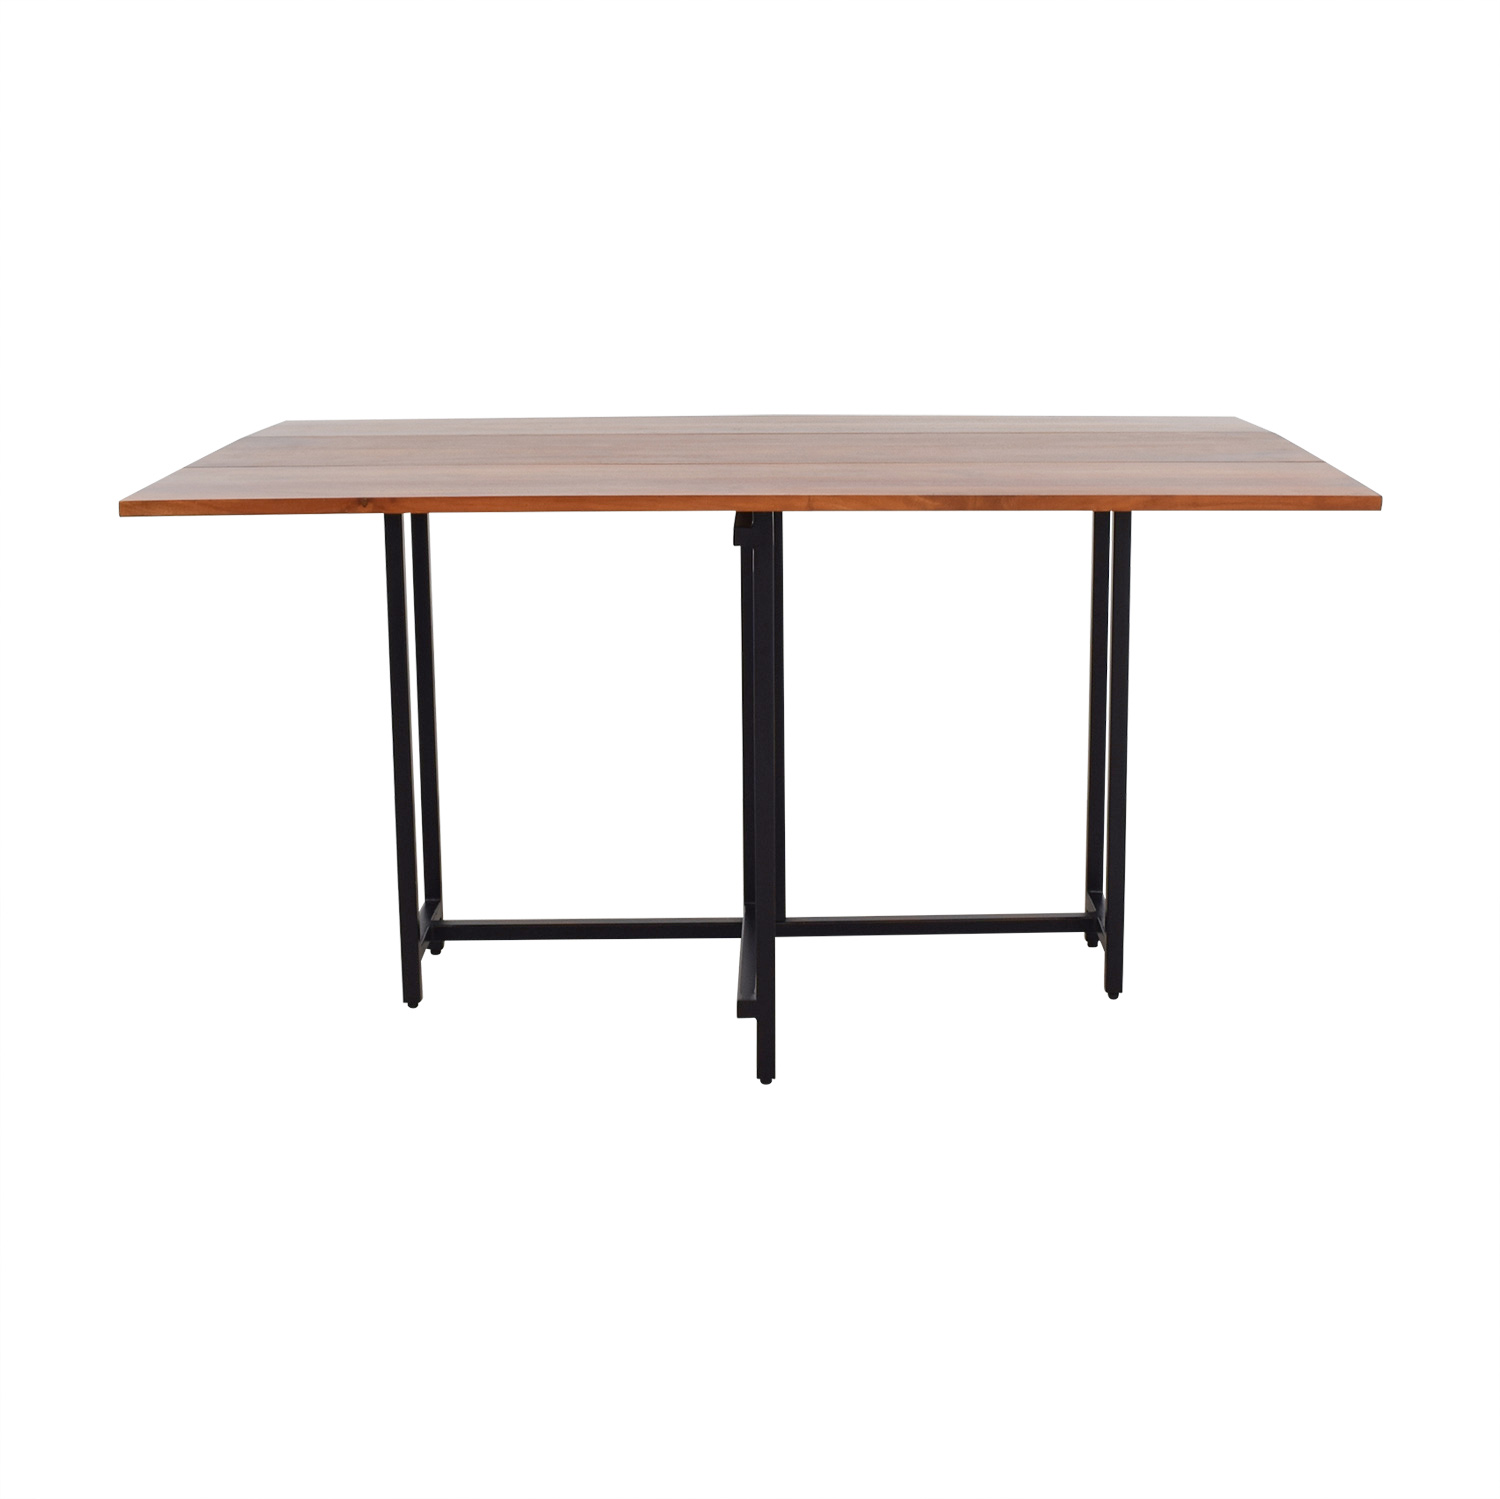 Crate & Barrel Crate & Barrel Origami Extendable Leaf Table price